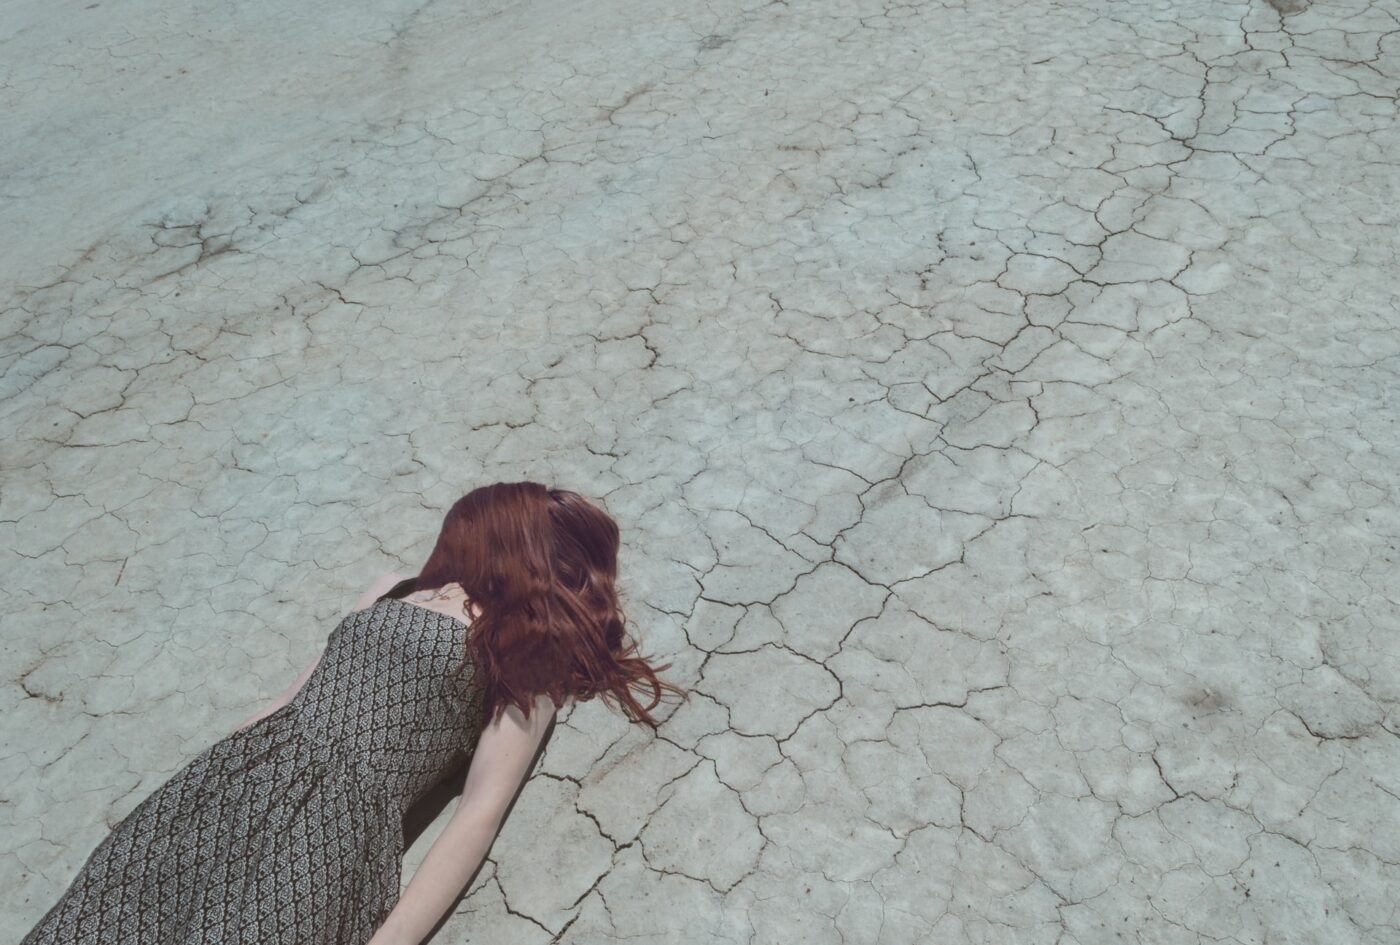 woman lying facedown on dry cracked outdoor surface